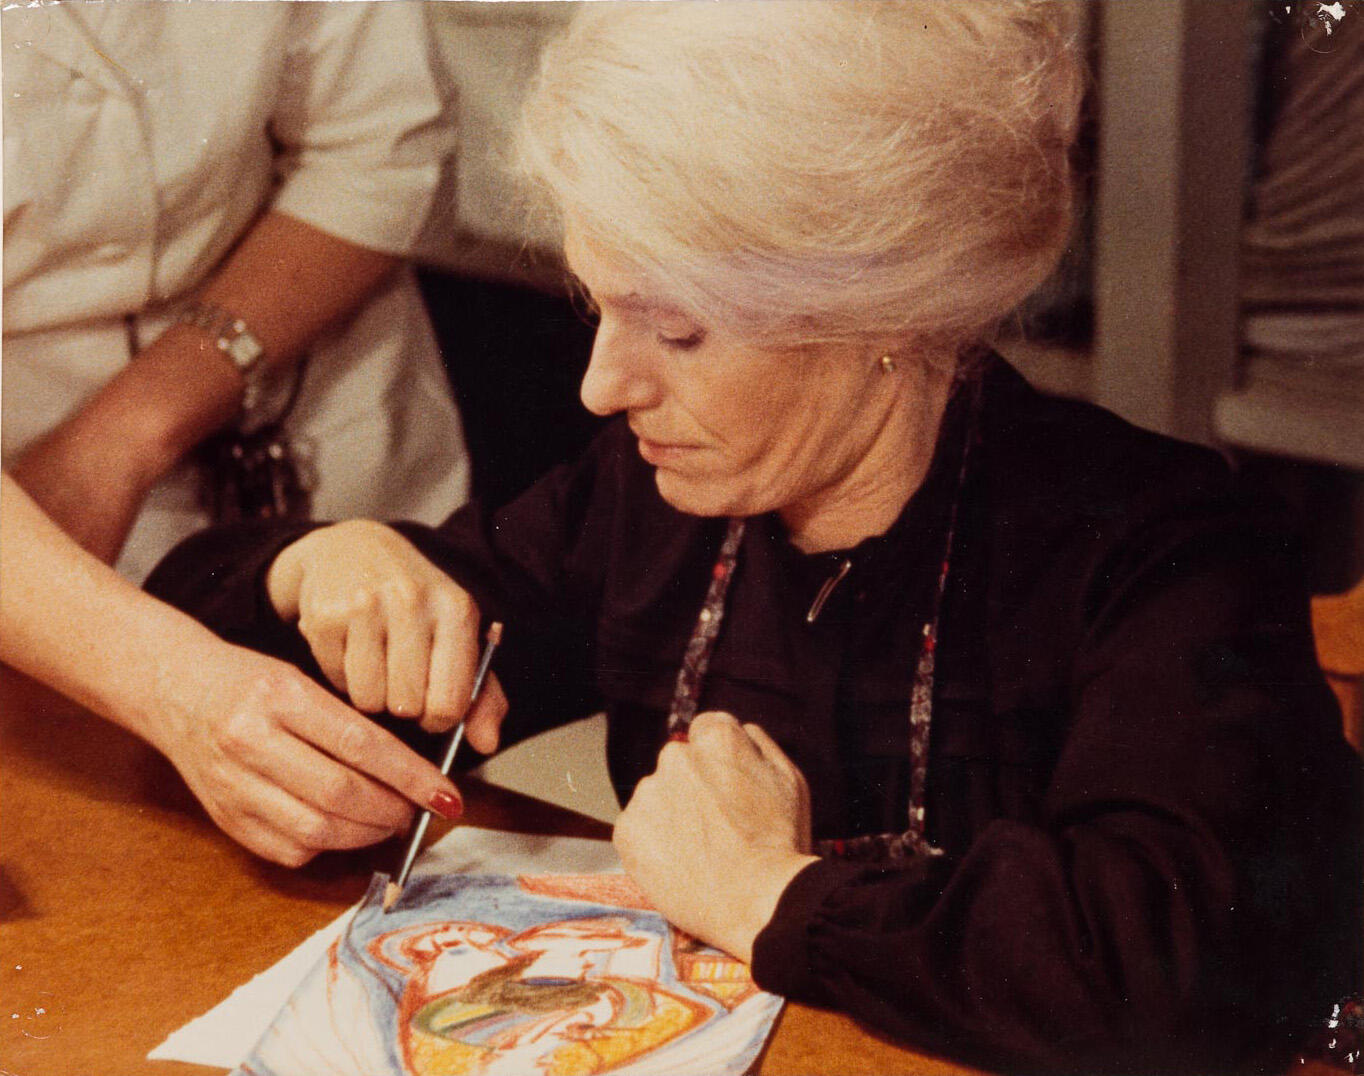 French actress and feminist militant Delphine Seyrig as Swiss painter Aloïse Corbaz, painting in Liliane de Kermadec's 'Aloïse', one of the films at the 1975 Cannes Film Festival